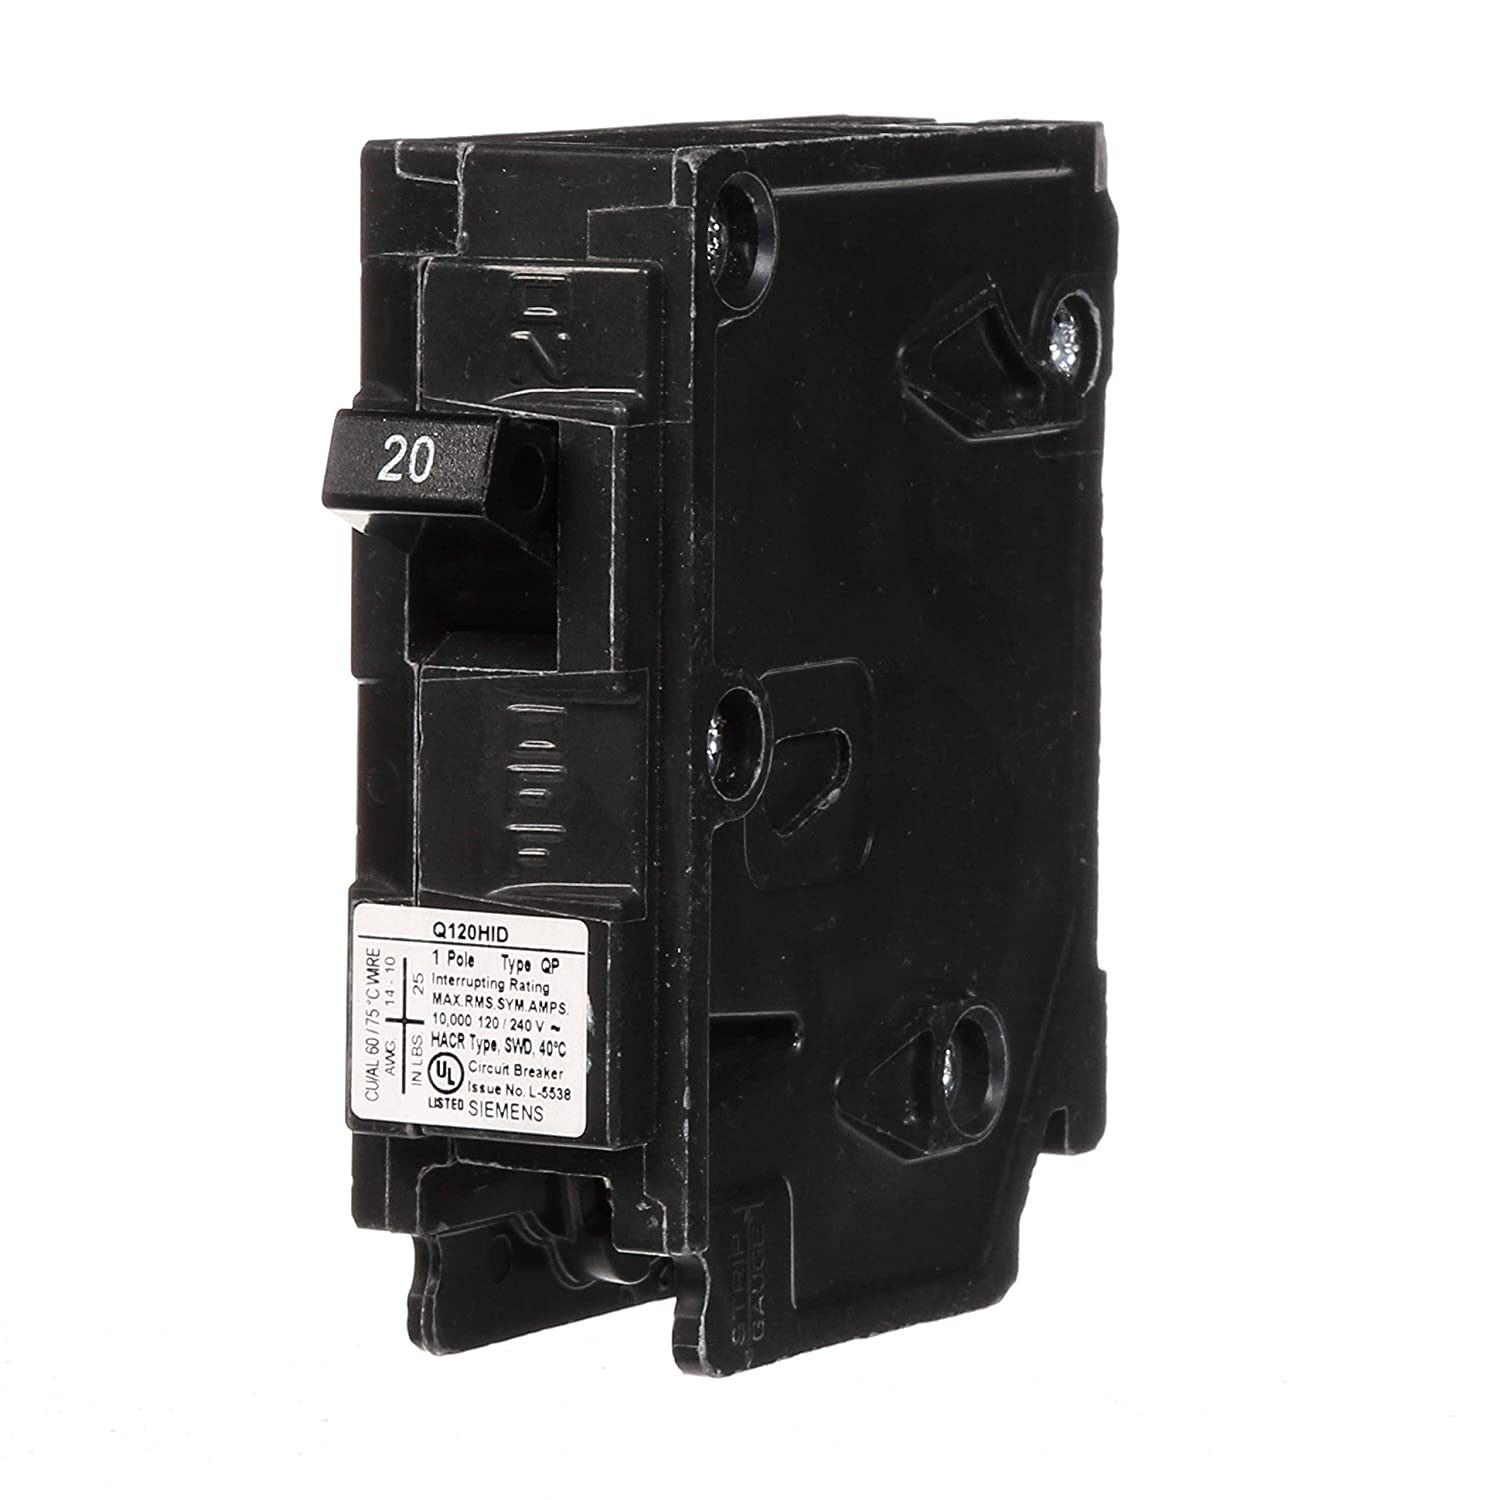 Siemens Q120HID Circuit Breaker, 20 Amp, Single Pole, for use with HID Lighting Siemens -HI